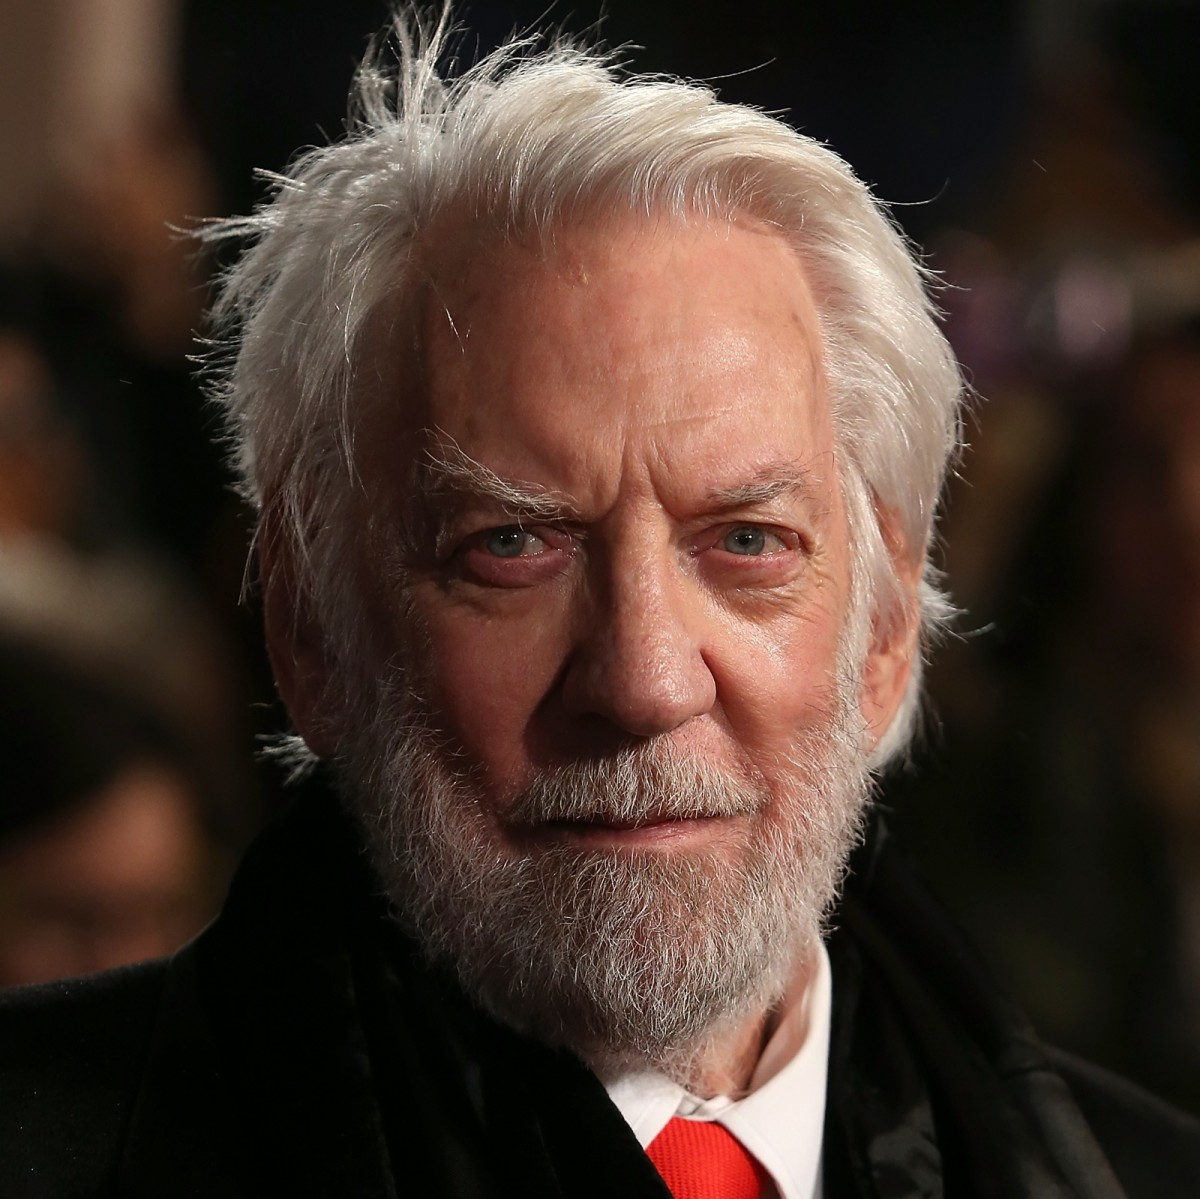 Donald Sutherland - Actor, Film Actor - Biography